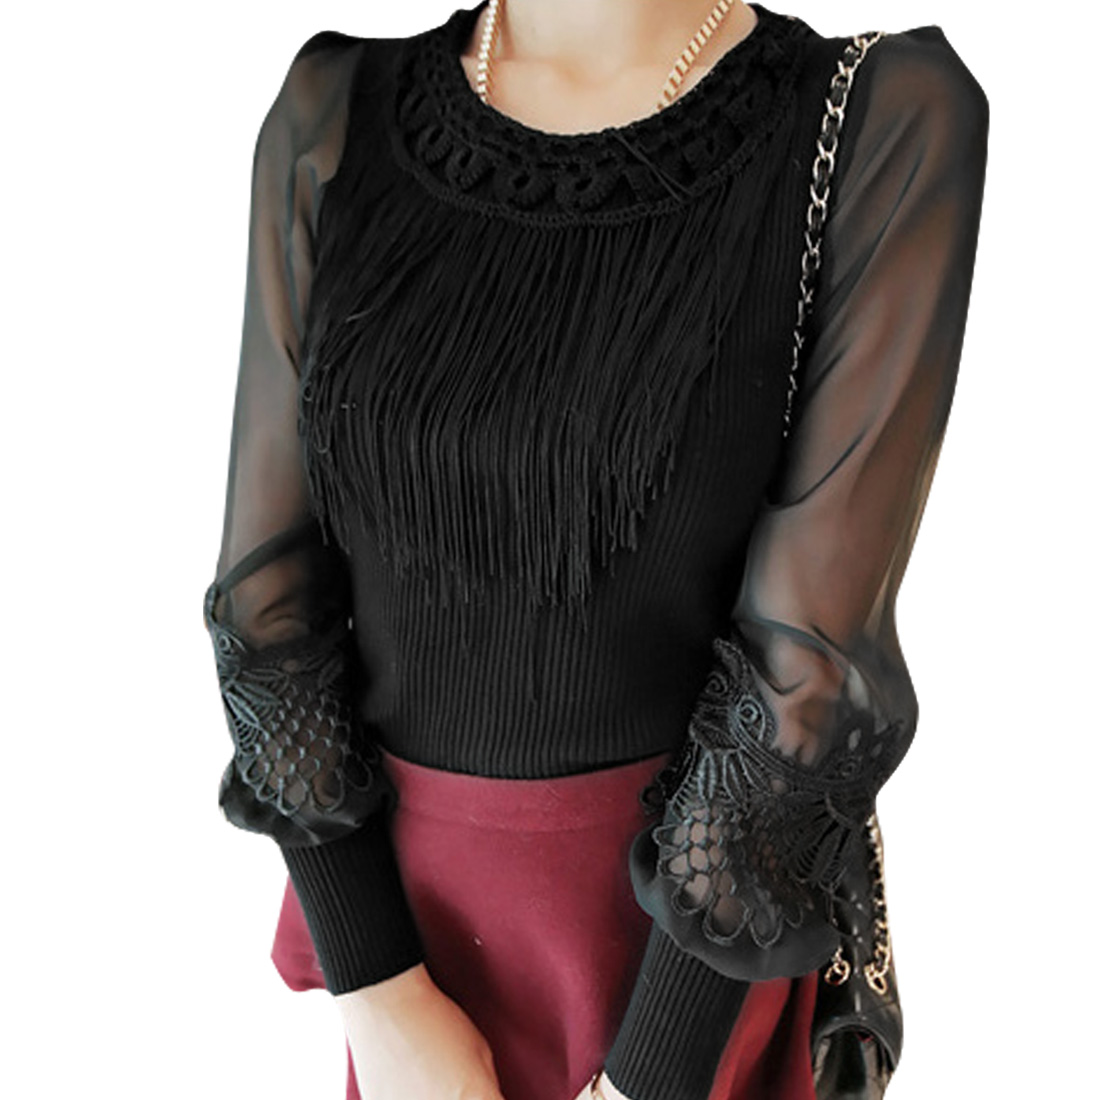 Women Semi-Sheer Long Sleeved Tassel Decor Black Knit Shirt XS